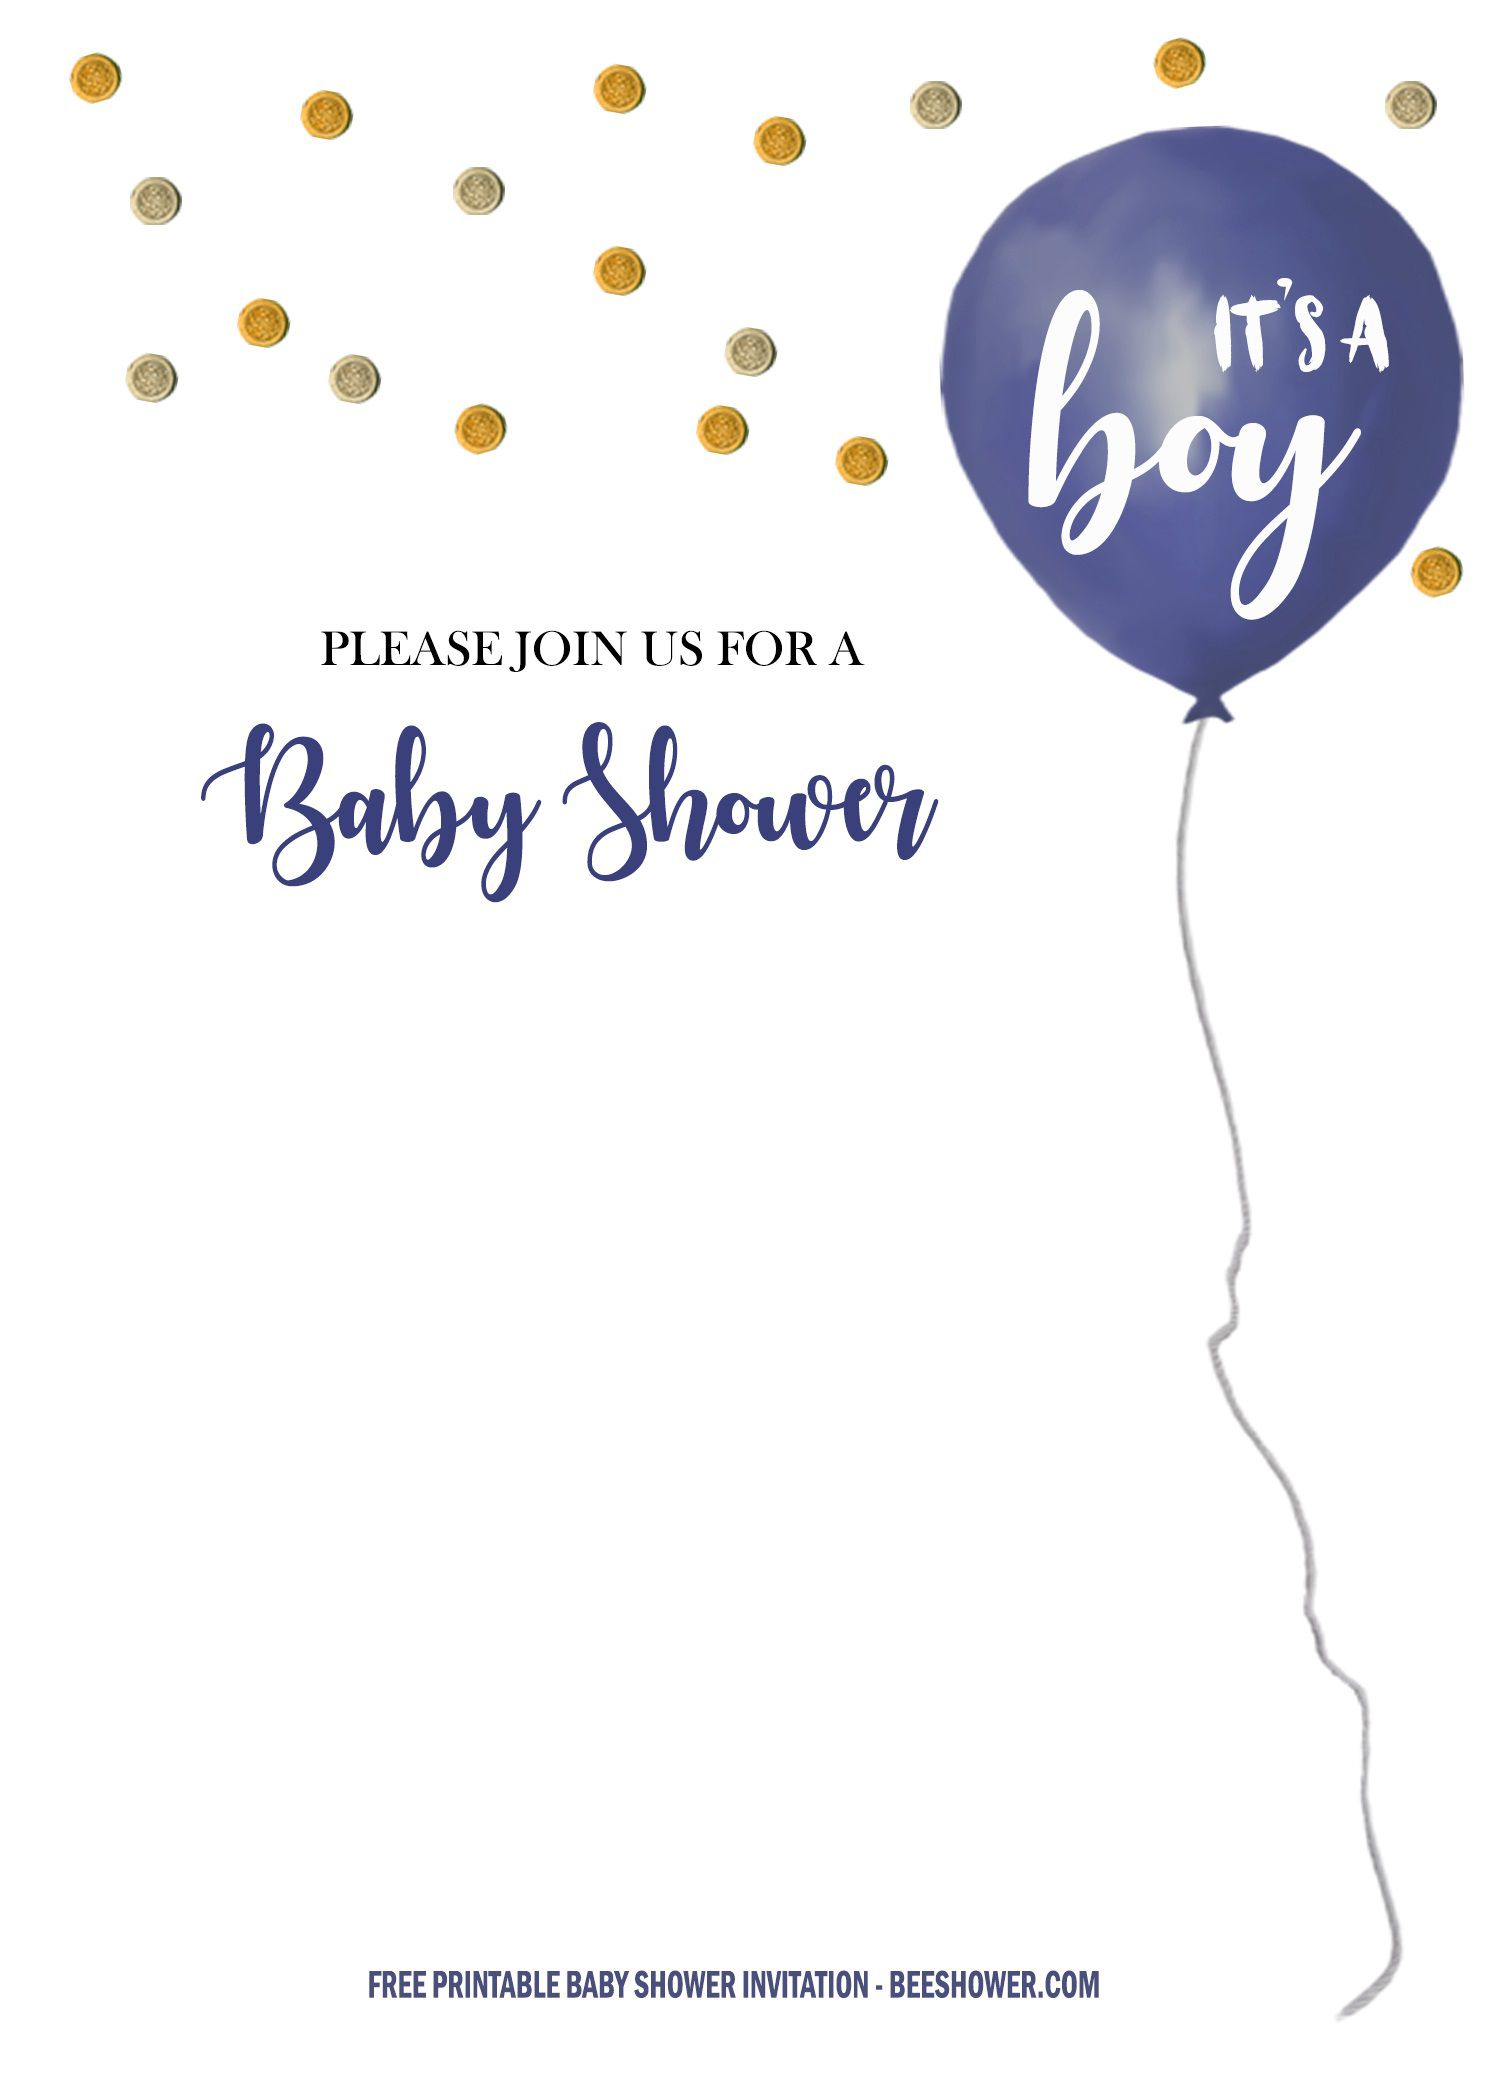 007 Beautiful Baby Shower Invitation Free Template Inspiration  Templates Online Printable E-invitation Card Design DownloadFull